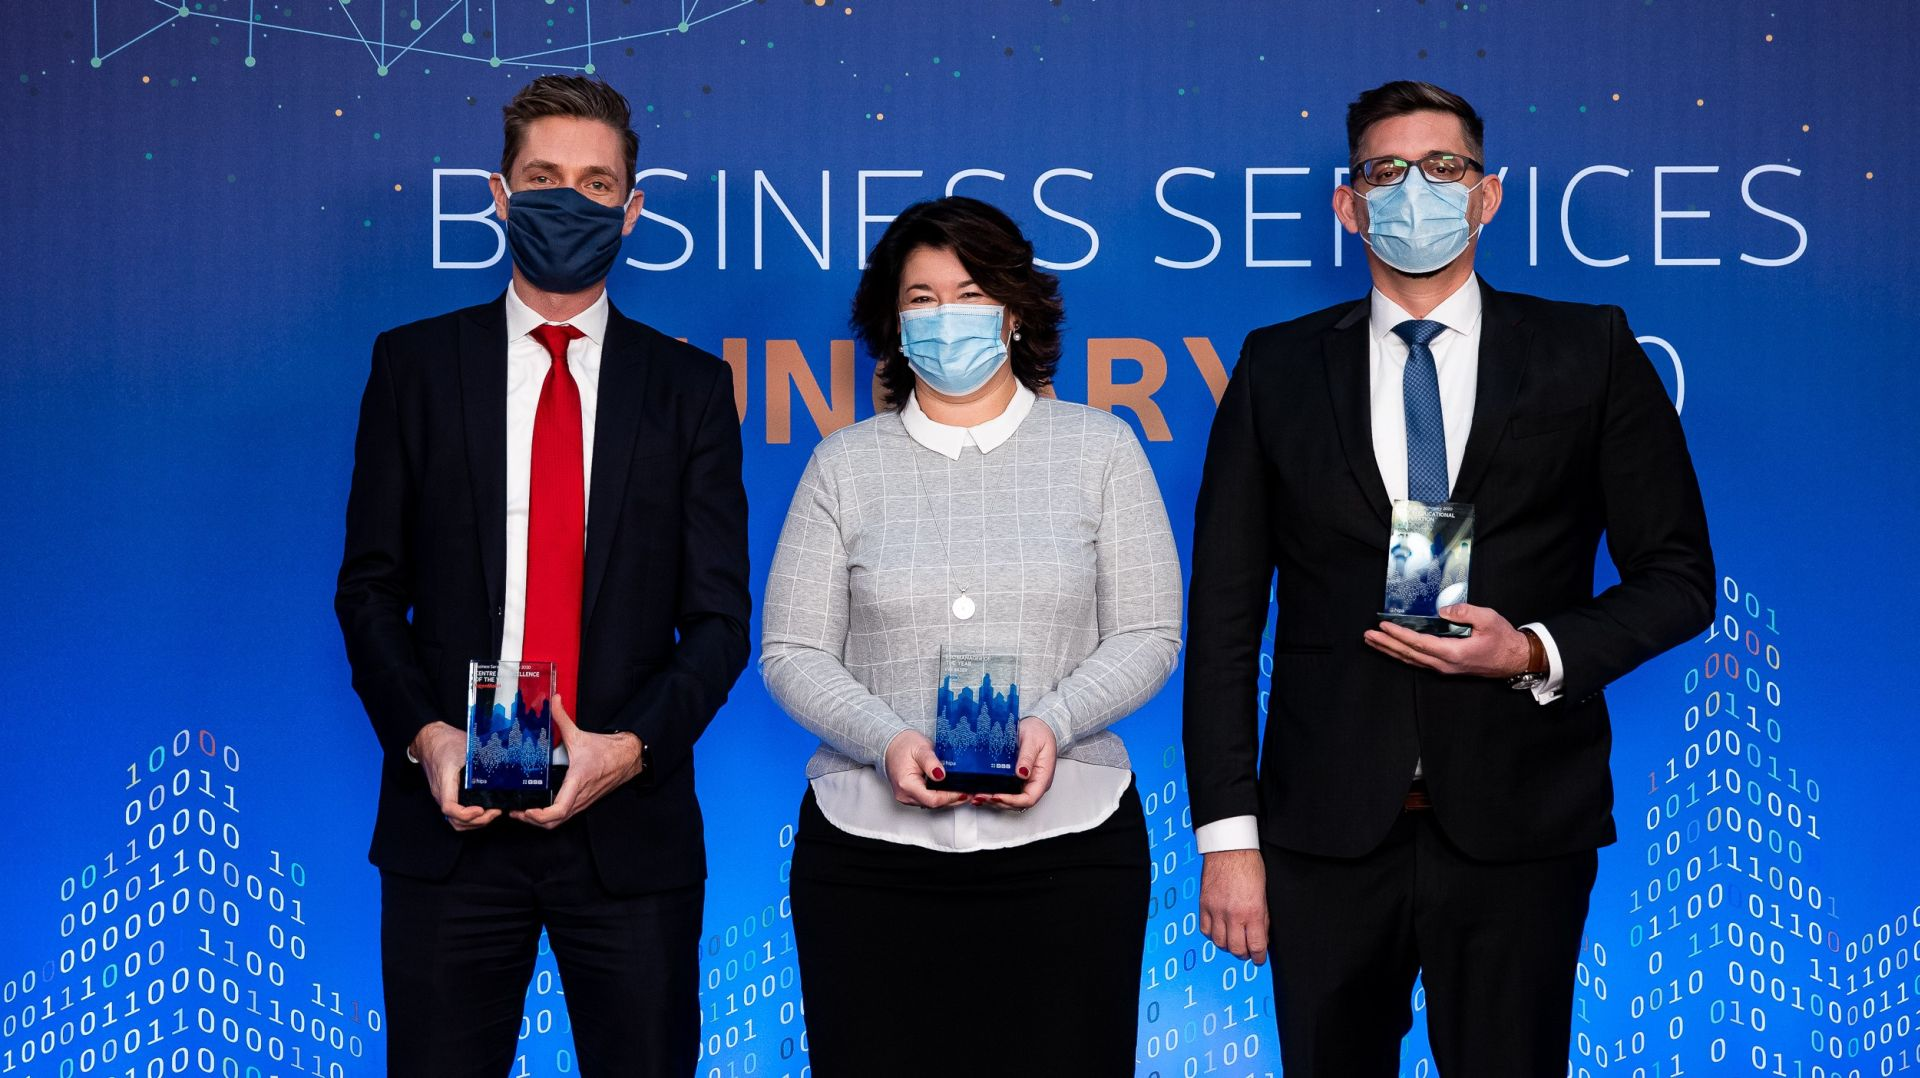 Business Services Hungary 2020: Key industry trends and tendencies after the pandemic - VIDEO